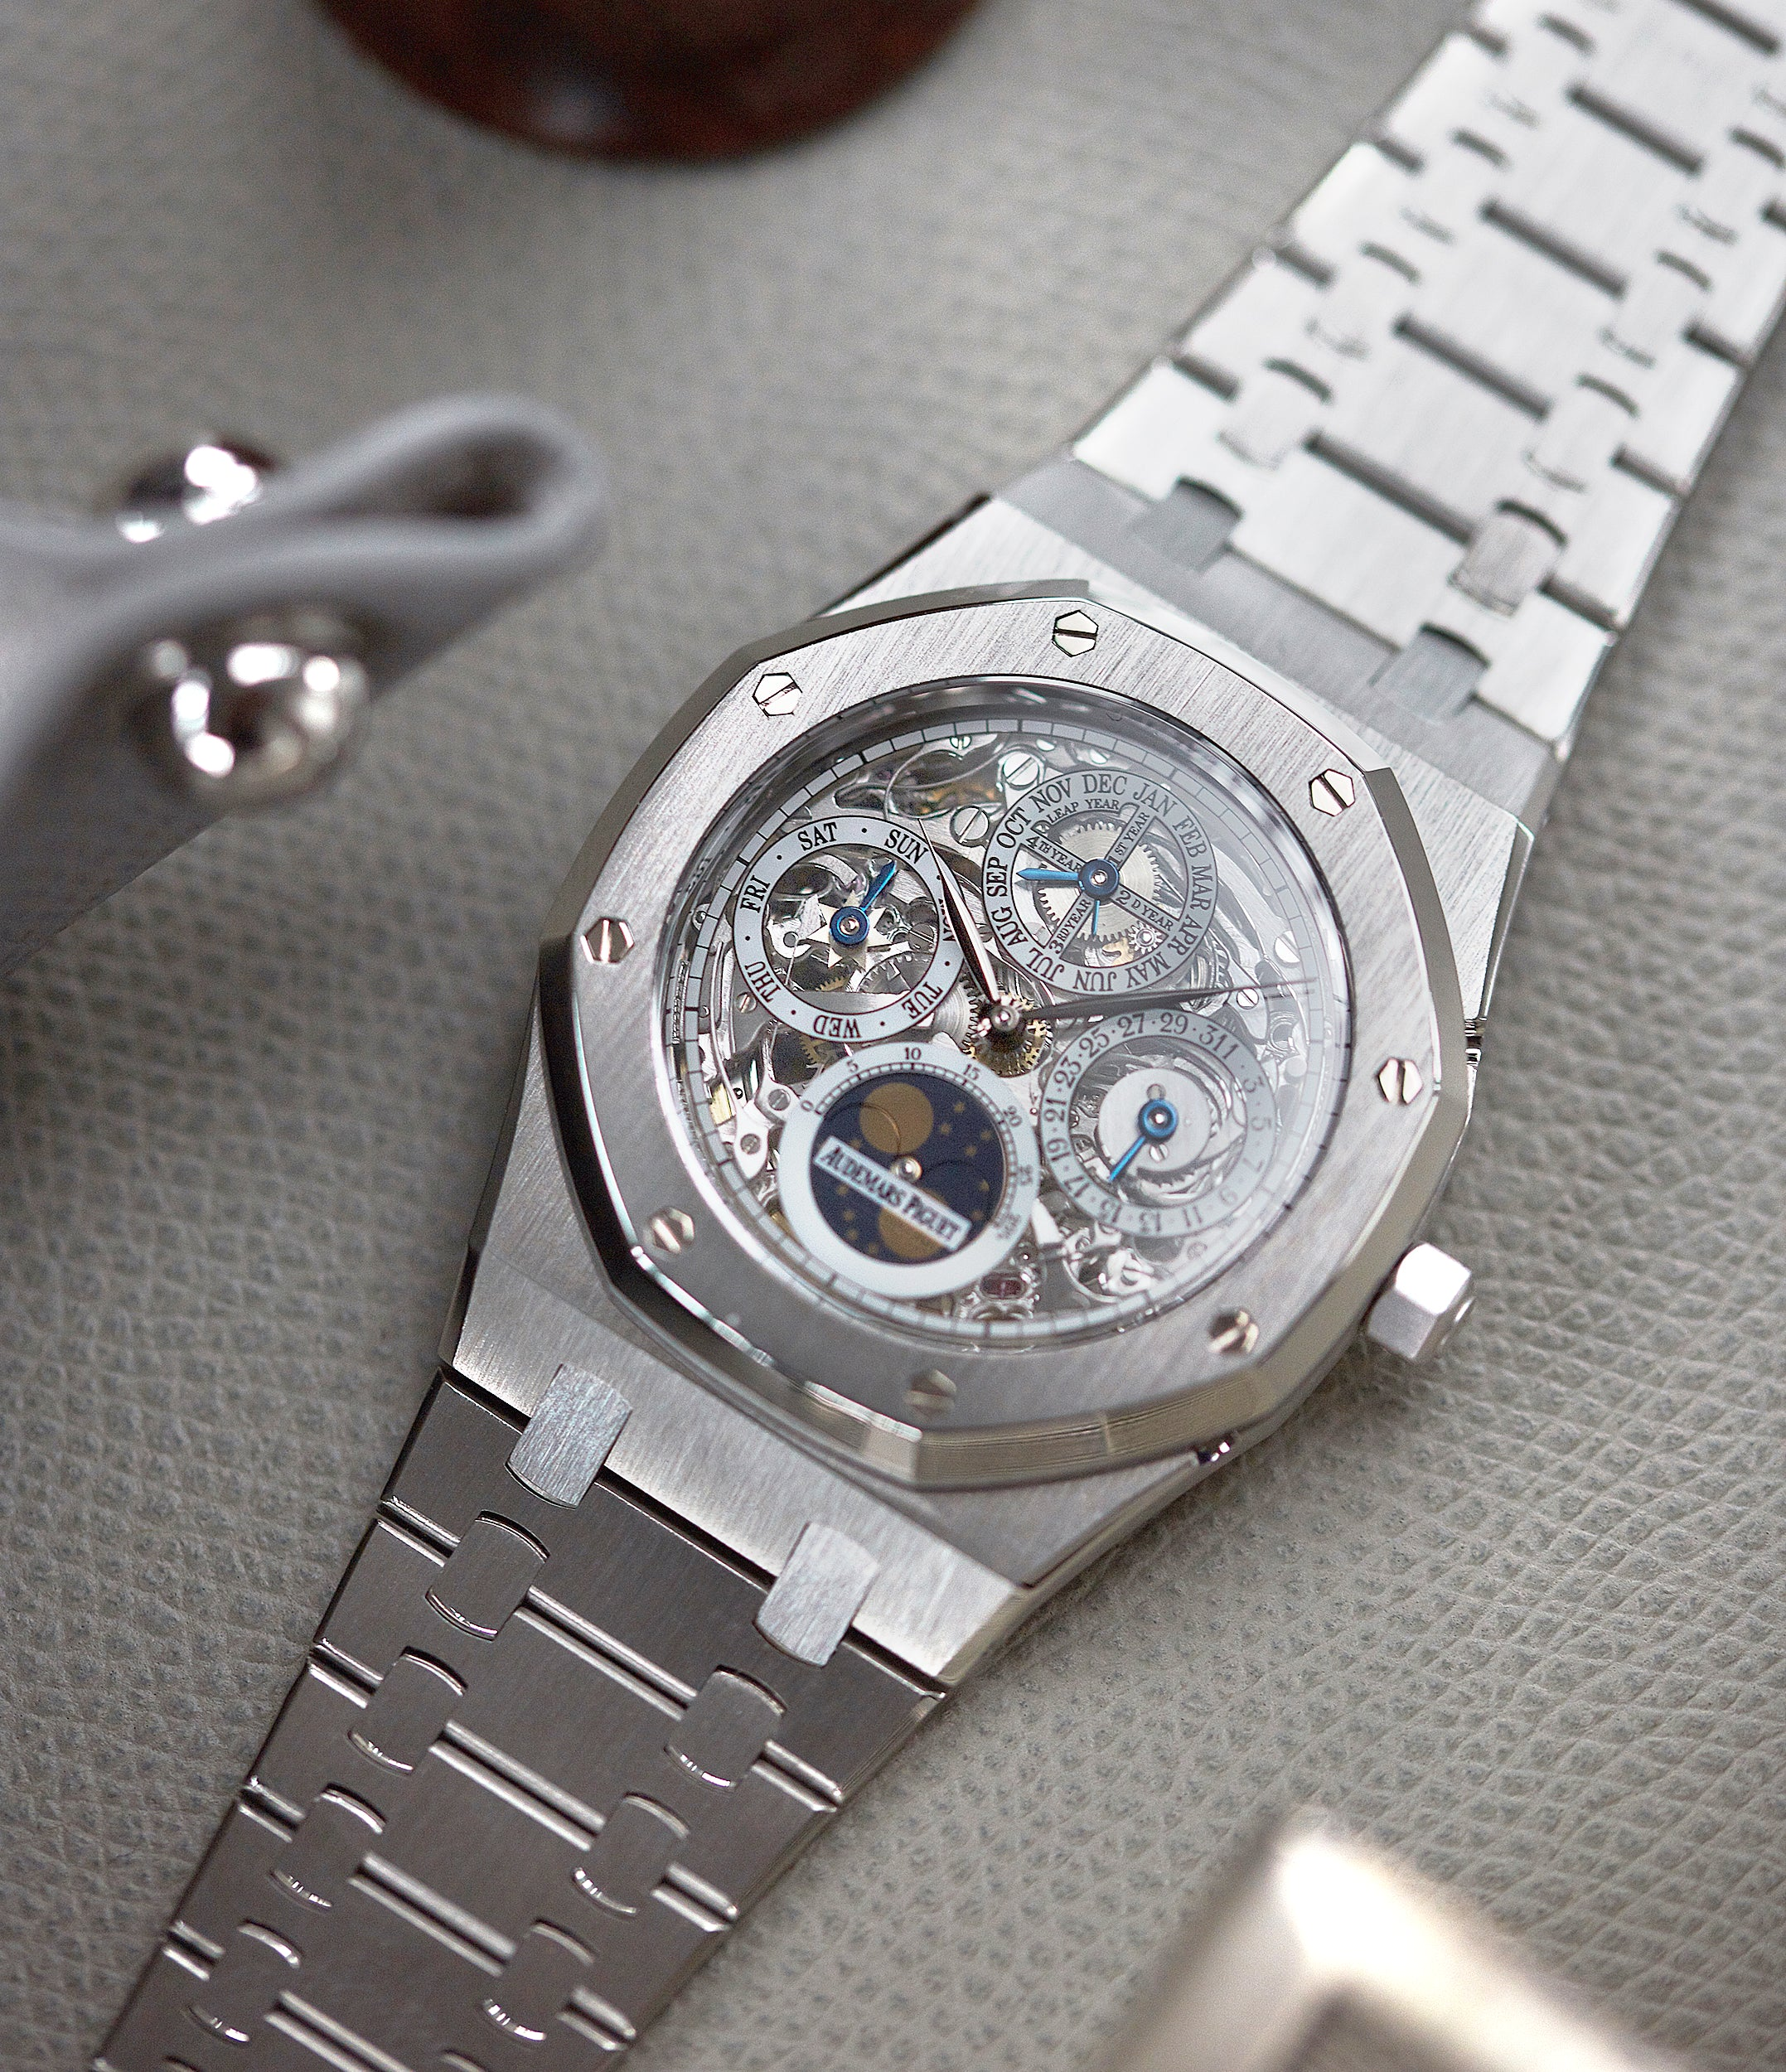 rare Audemars Piguet Royal Oak 25829PT perpetual calendar skeleton dial platinum full set pre-owned watch for sale online at A Collected Man London UK specialist of rare watches